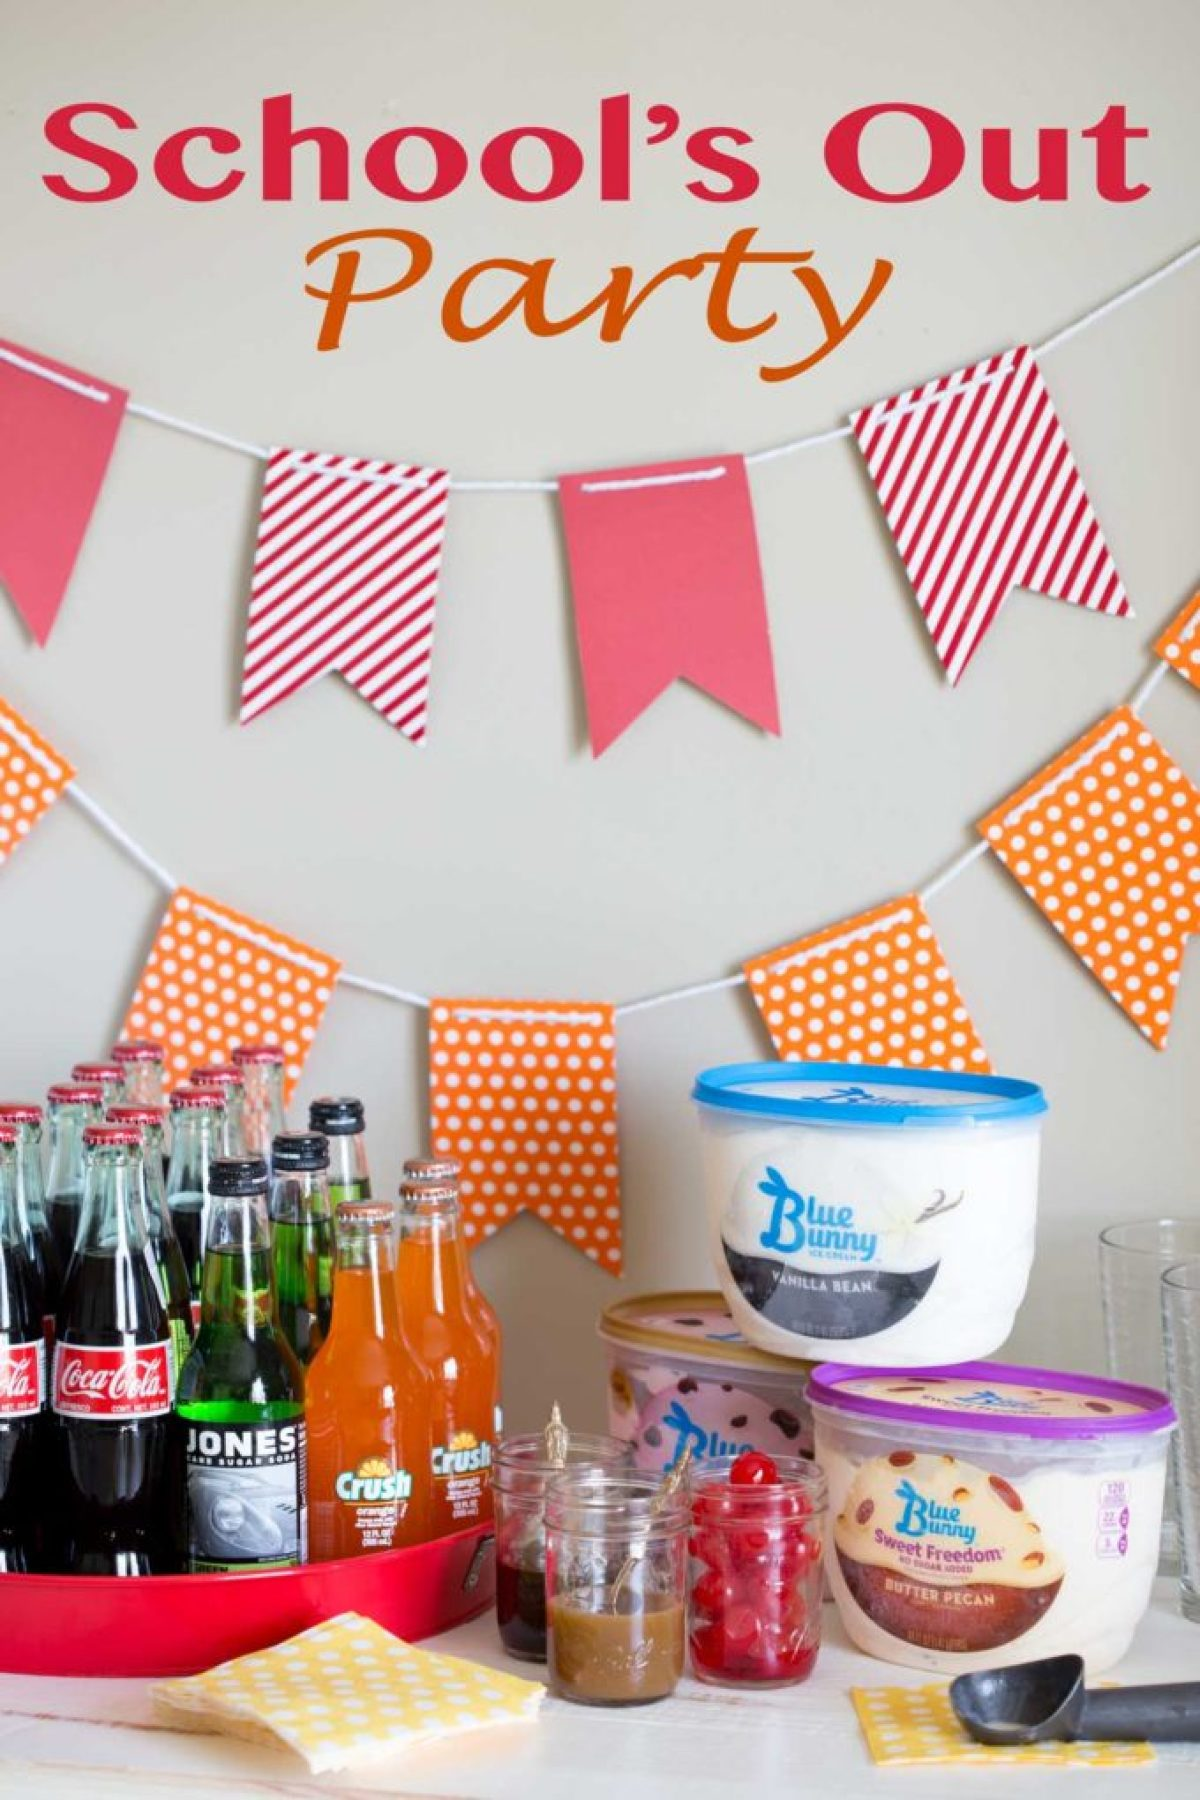 School's Out Party plan with ice cream float bar